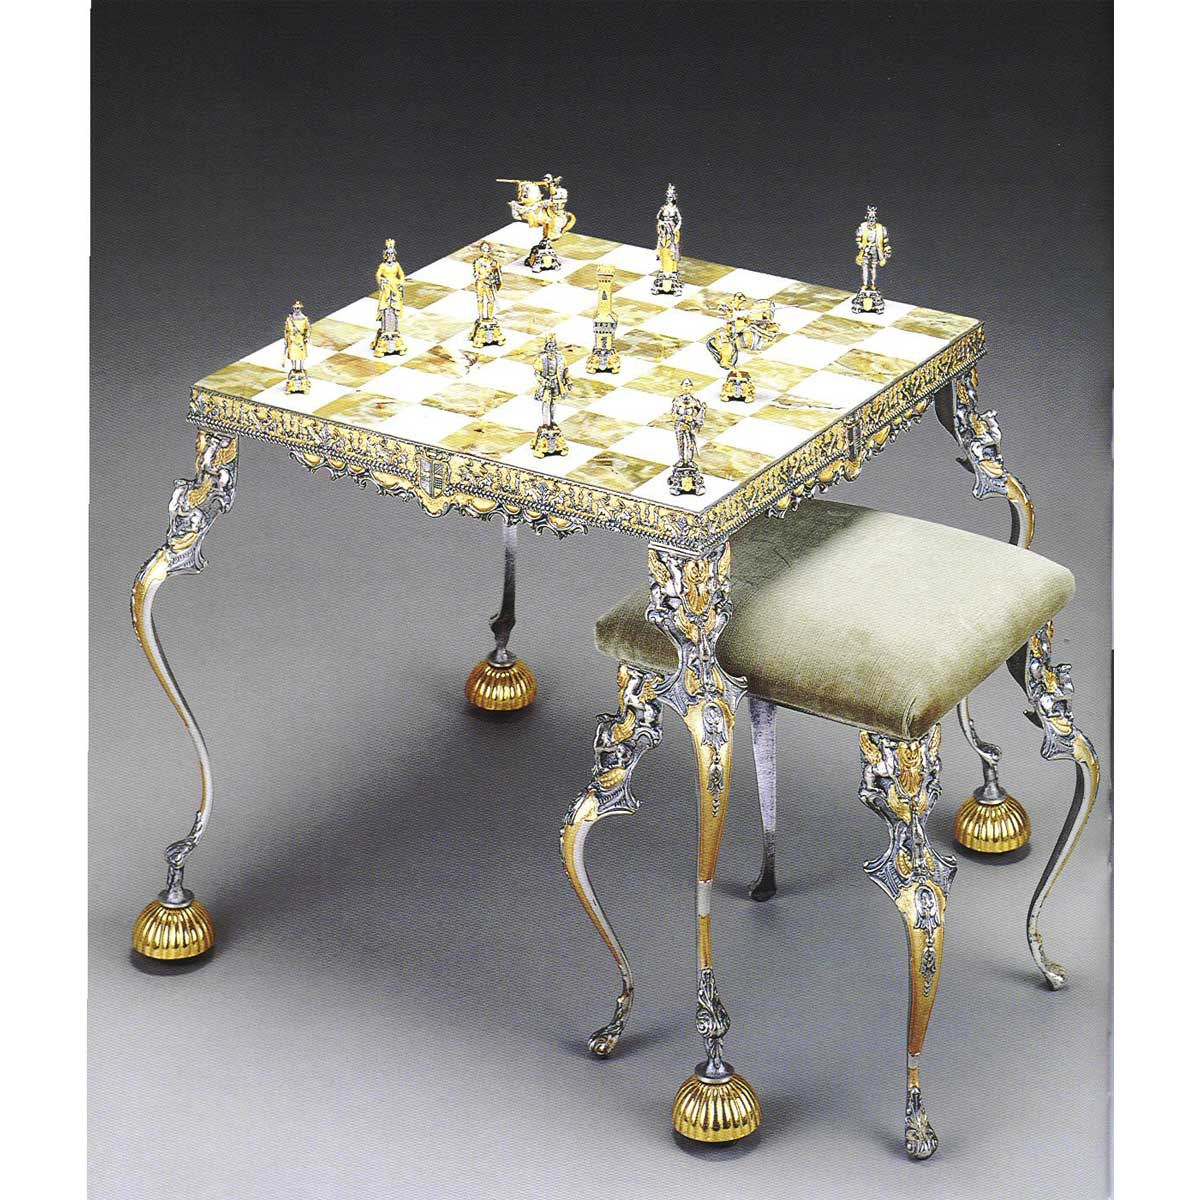 Medioevale Secolo XIII Onyx Chess Table and Stool